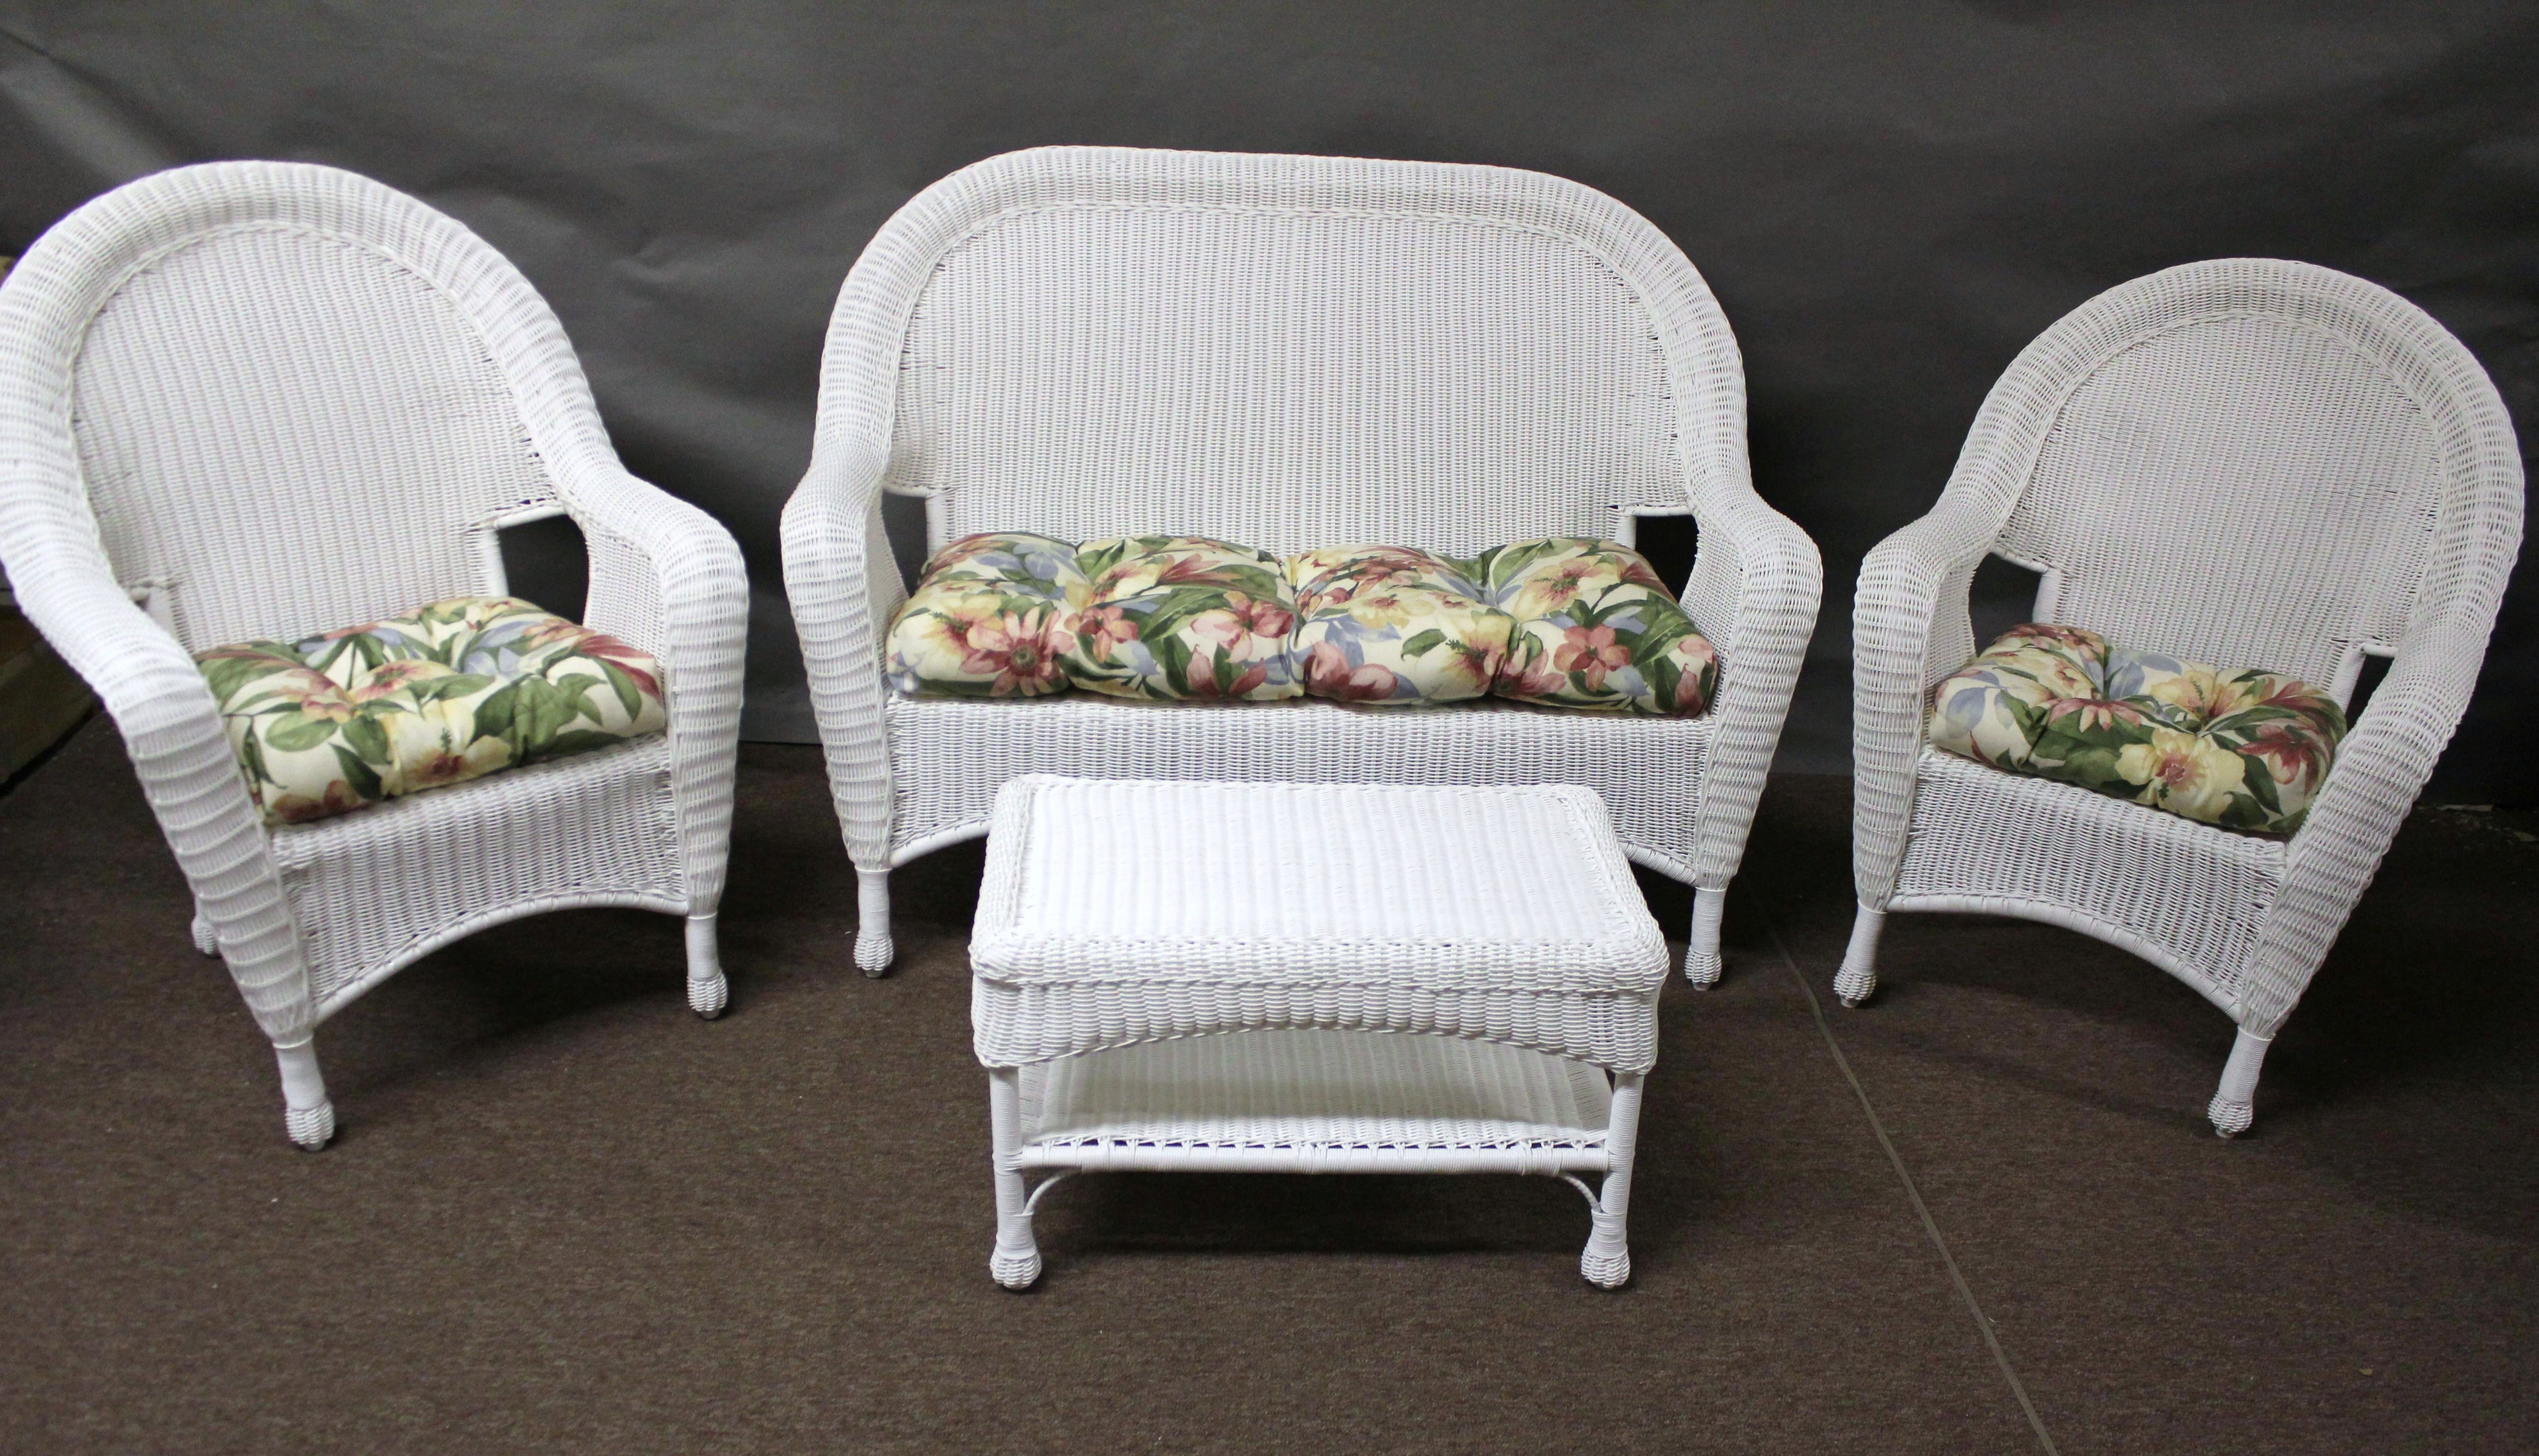 Furniture Interesting Wicker Chair Cushions For Inspiring Outdoor With Regard To Outdoor Wicker Furniture Cushions Warmth Outdoor Wicker Furniture Cushions